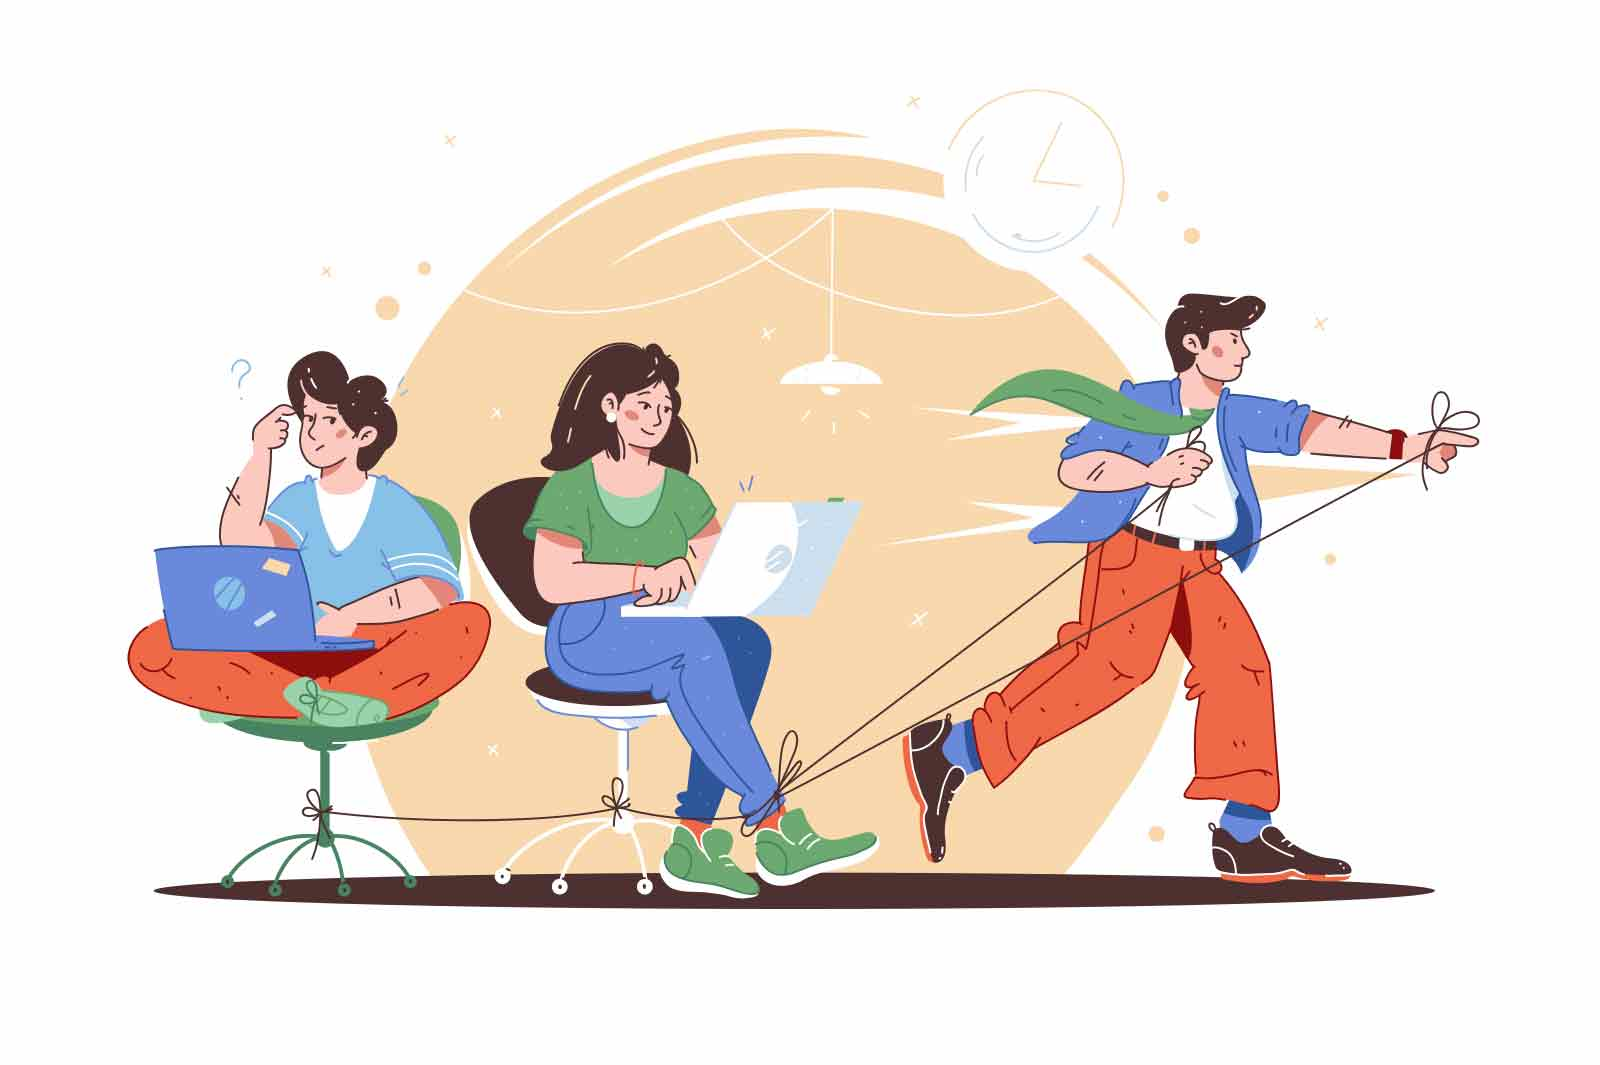 Workers follow leader in team vector illustration. Work together creates progress and winning flat style. Teamwork, goal achievement concept